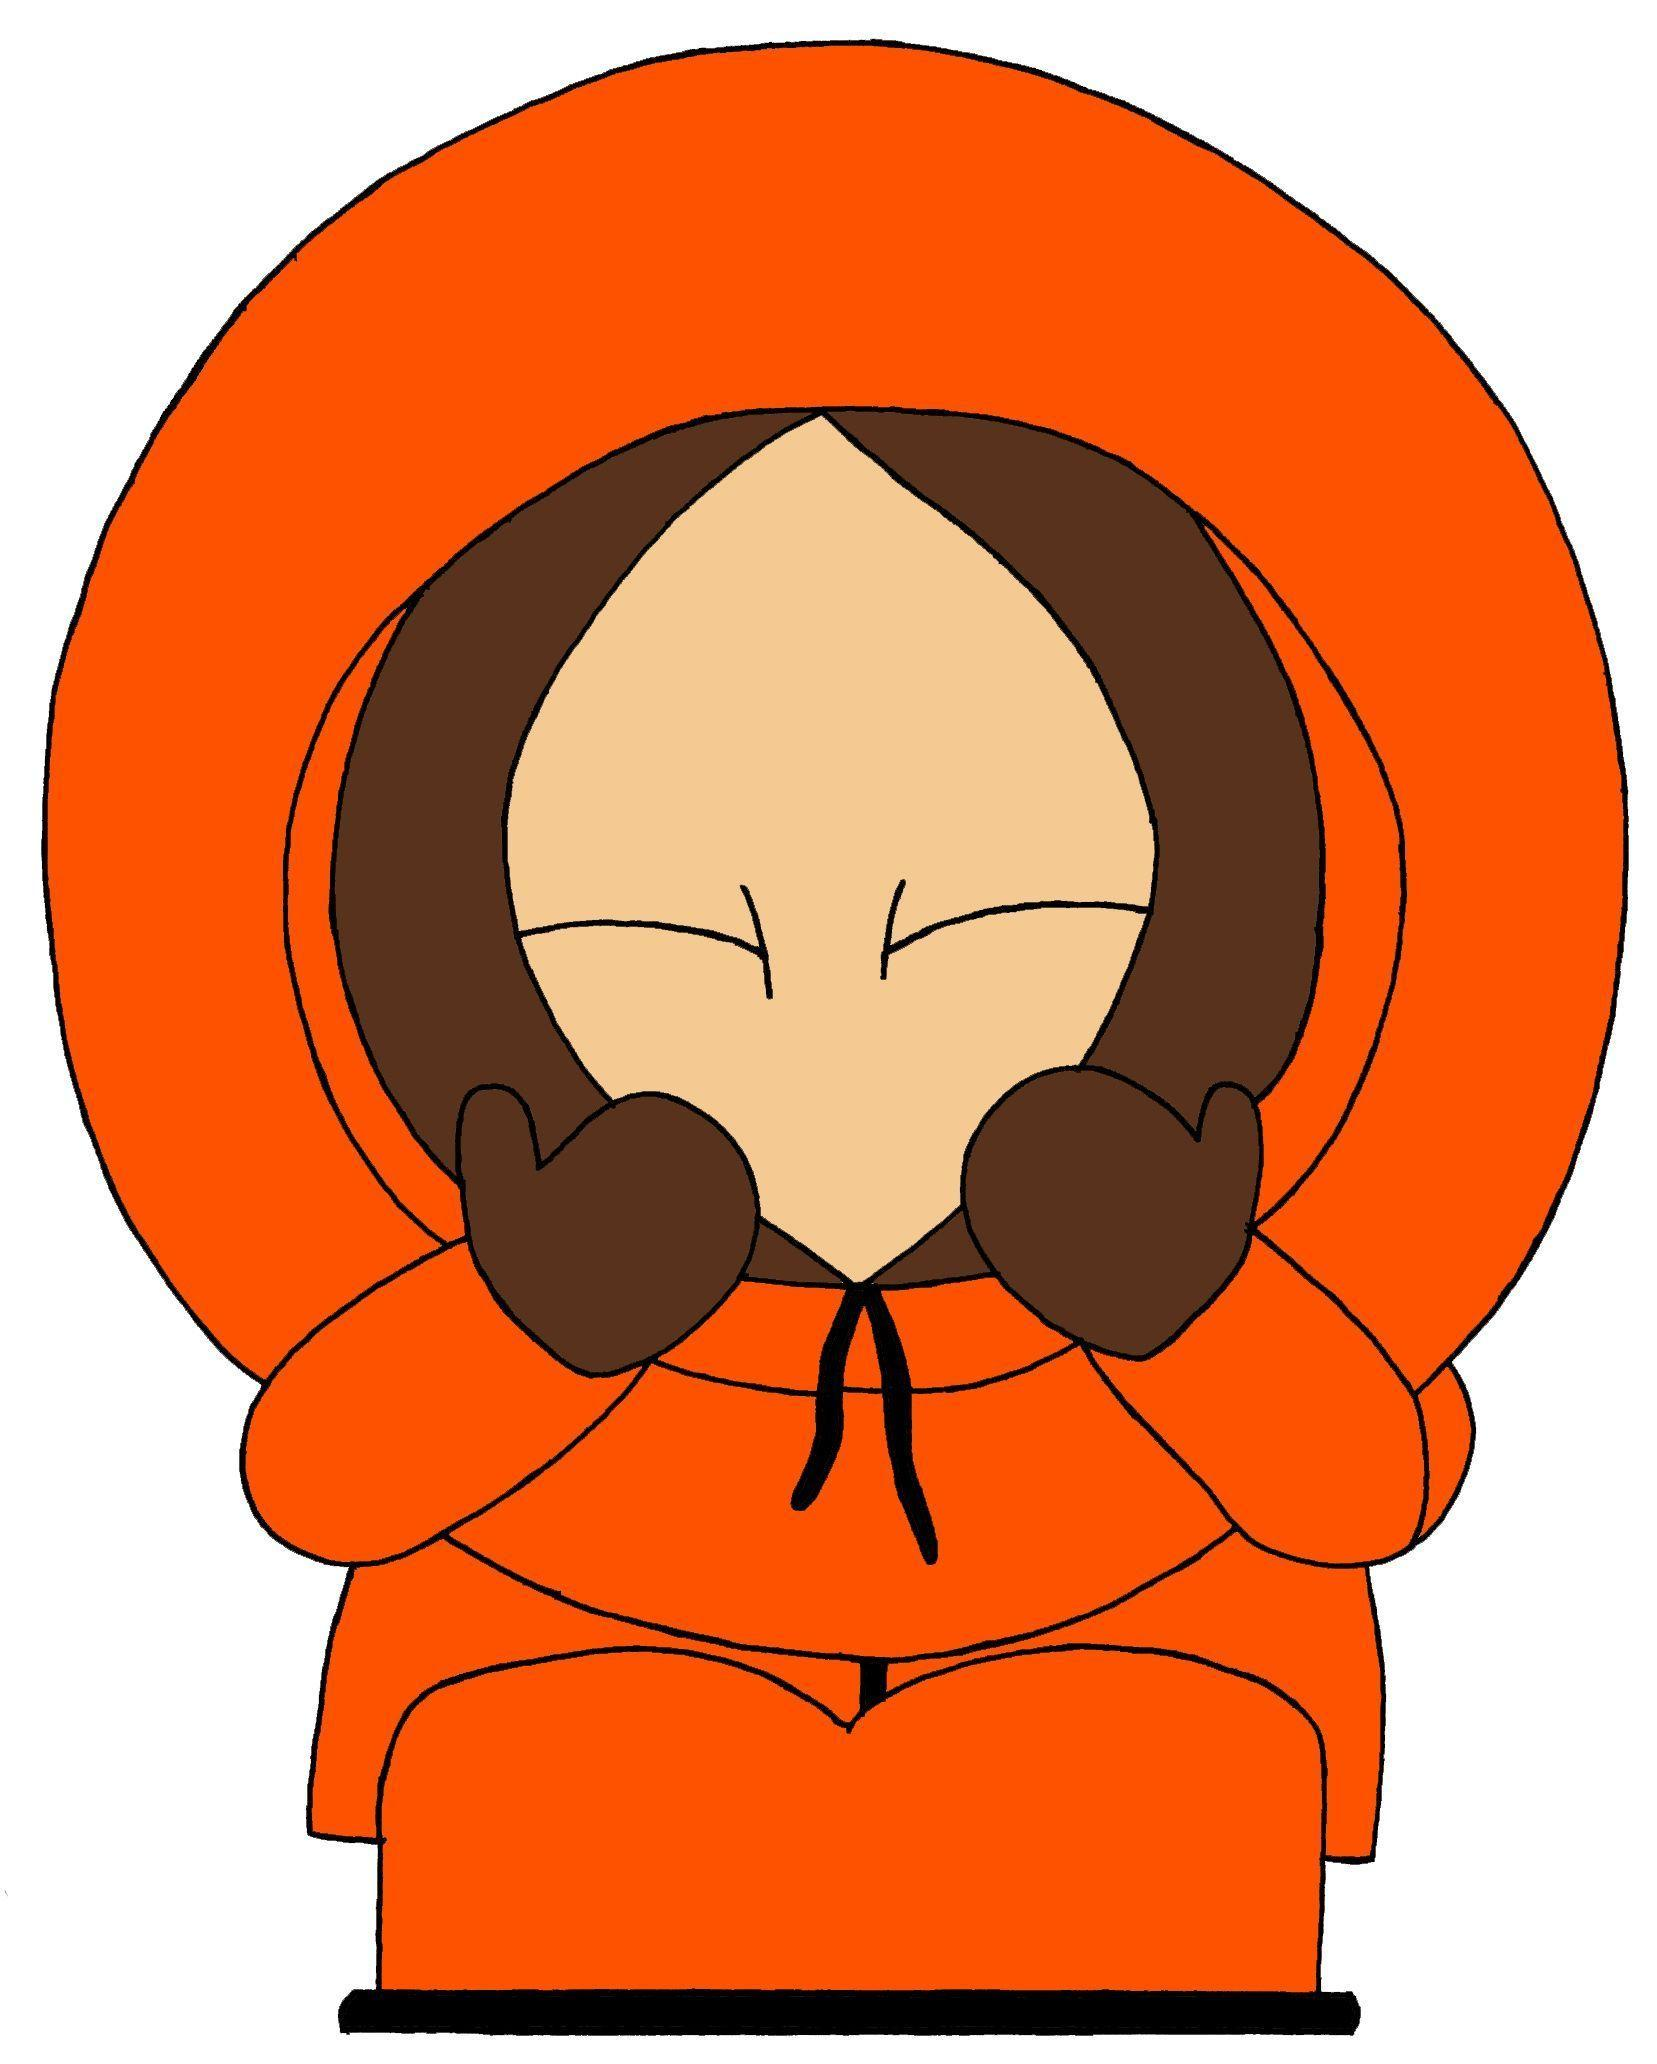 Kenny south park wallpapers wallpaper cave - Pics of kenny from south park ...